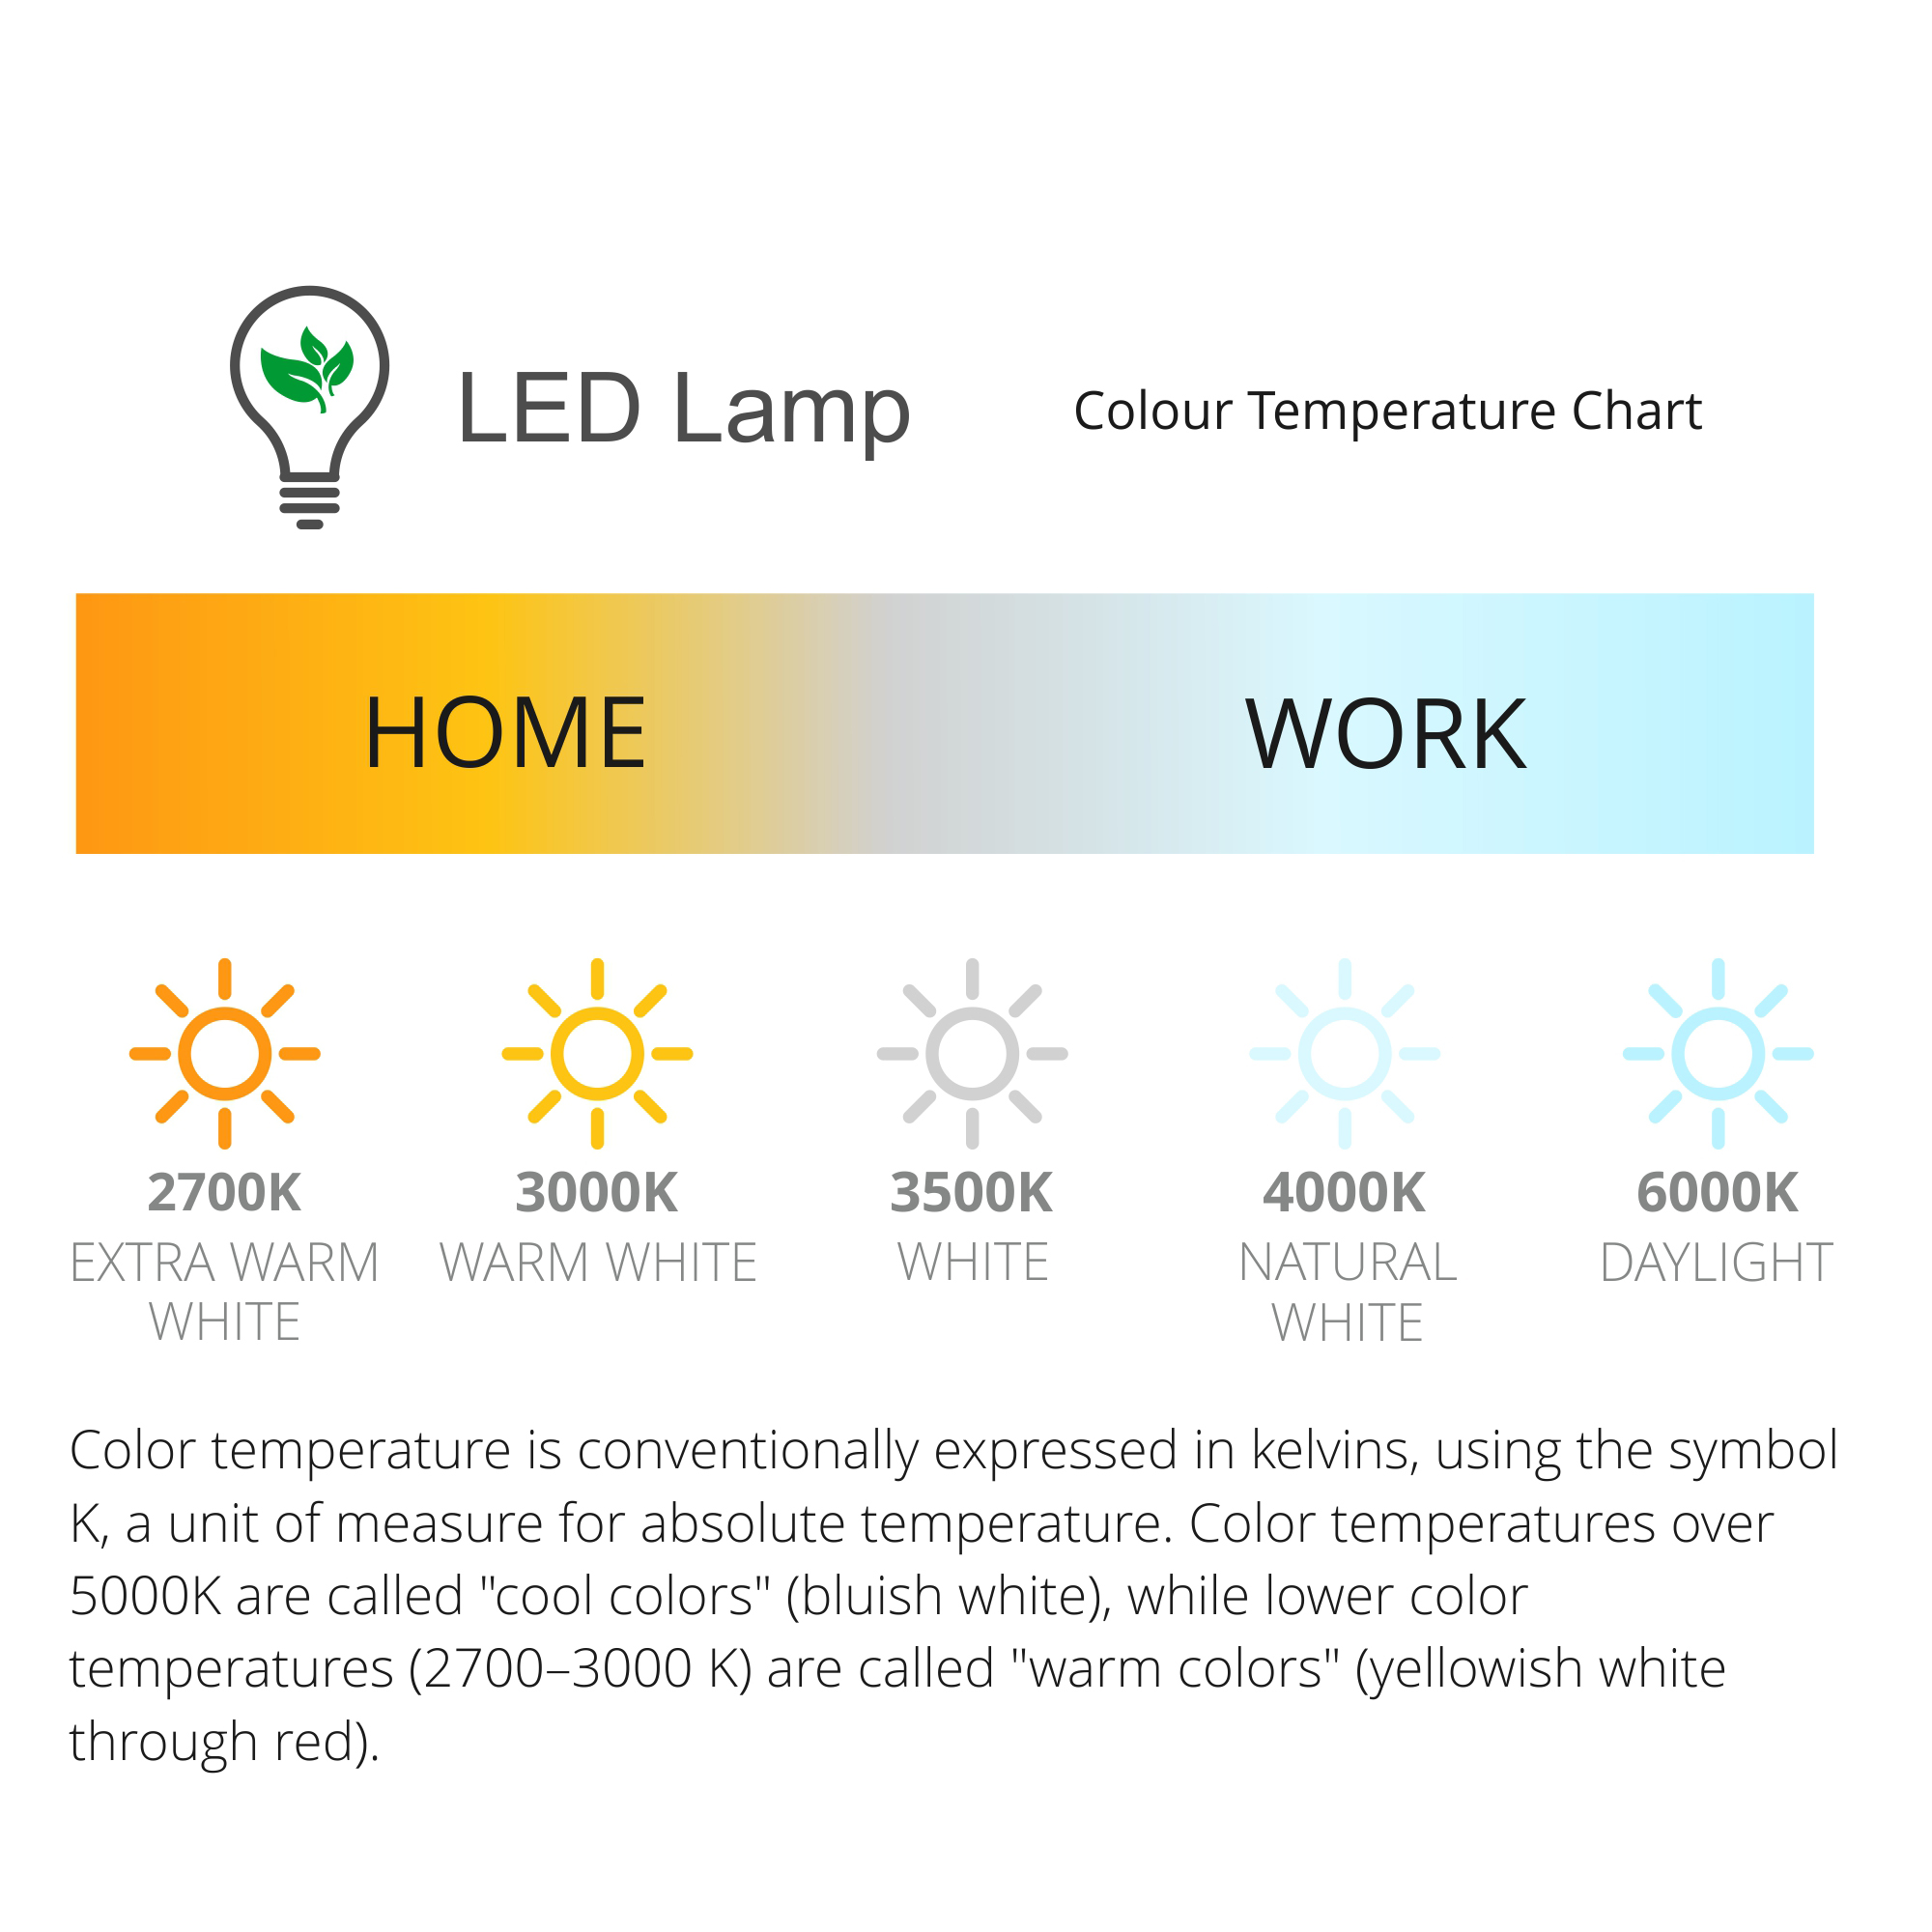 Wall Lamp, 1 Light Adjustable Switched, 1 x 5W LED, 3000K, 311lm, 3yrs Warranty